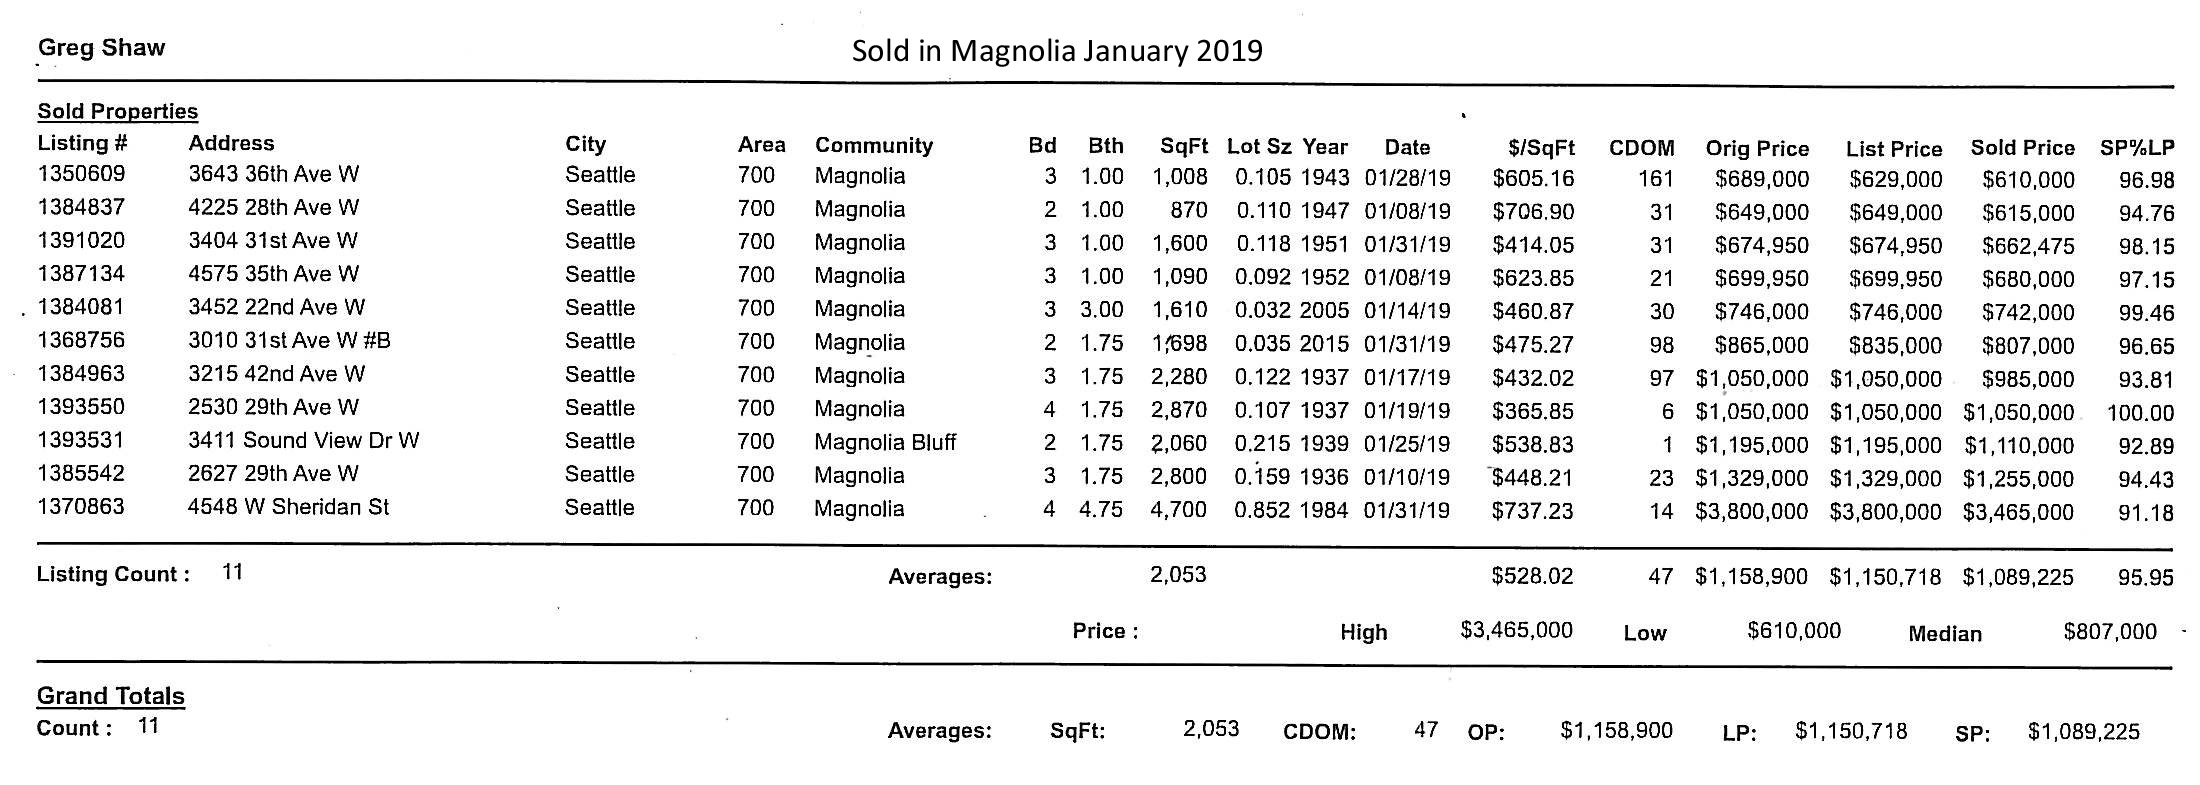 Sold in Magnolia January 2019